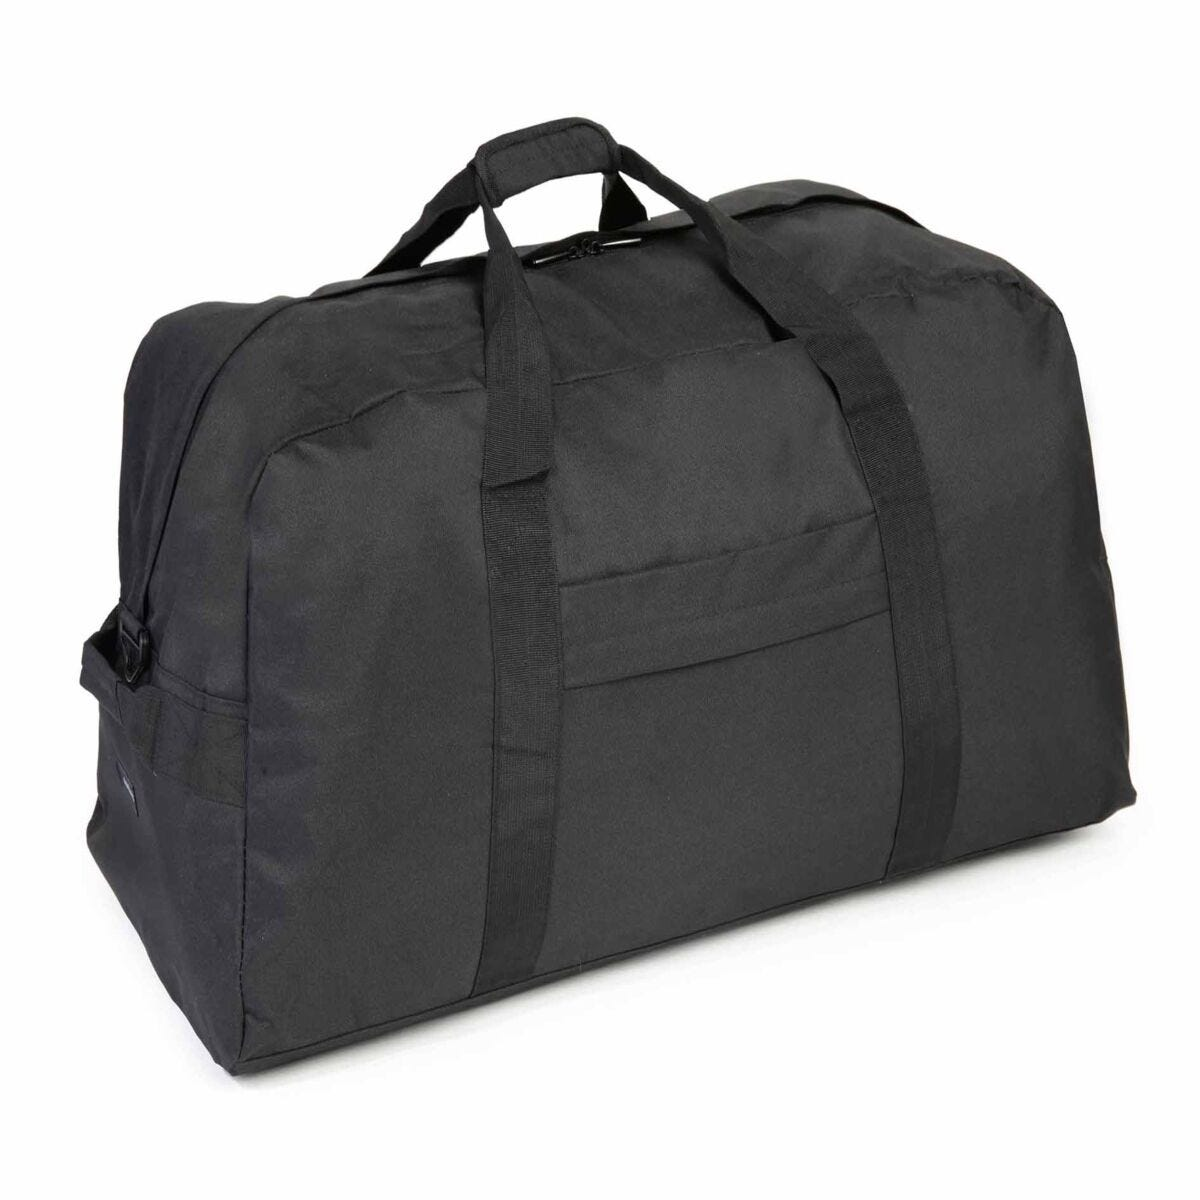 Members by Rock Medium Holdall and Duffle Bag 75cm